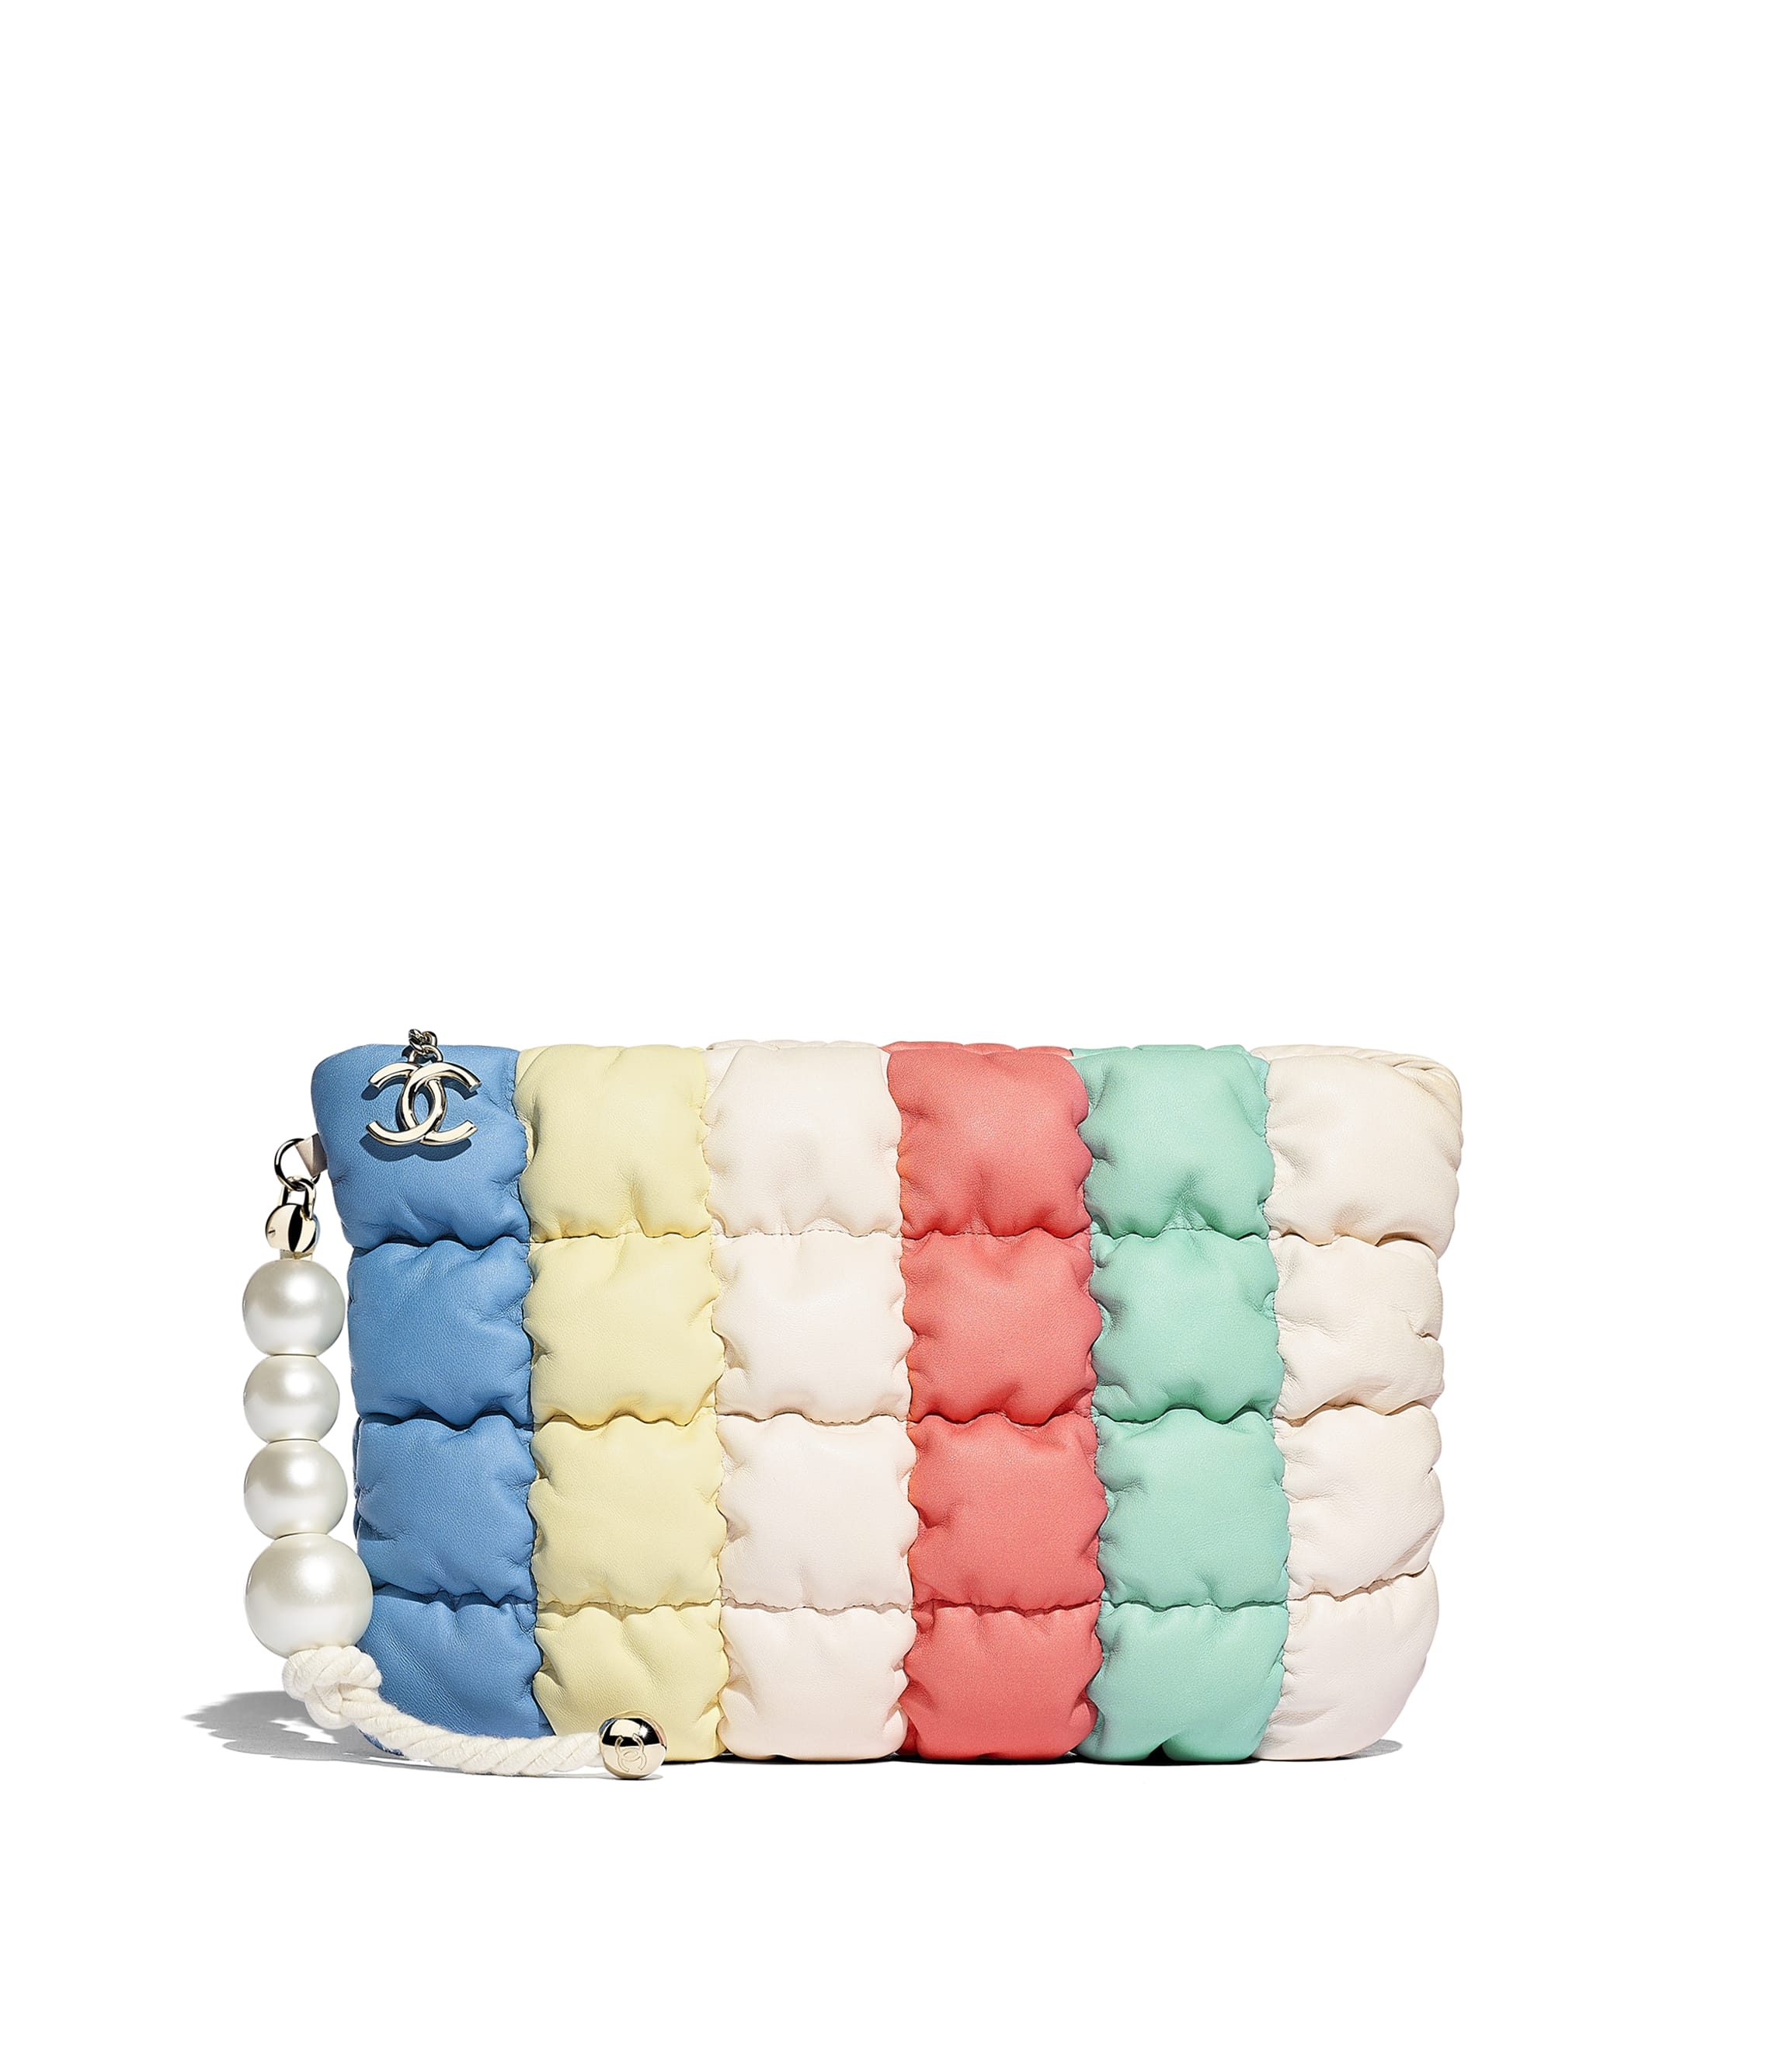 b95ccf6a7d1d7d Clutches - Handbags - CHANEL